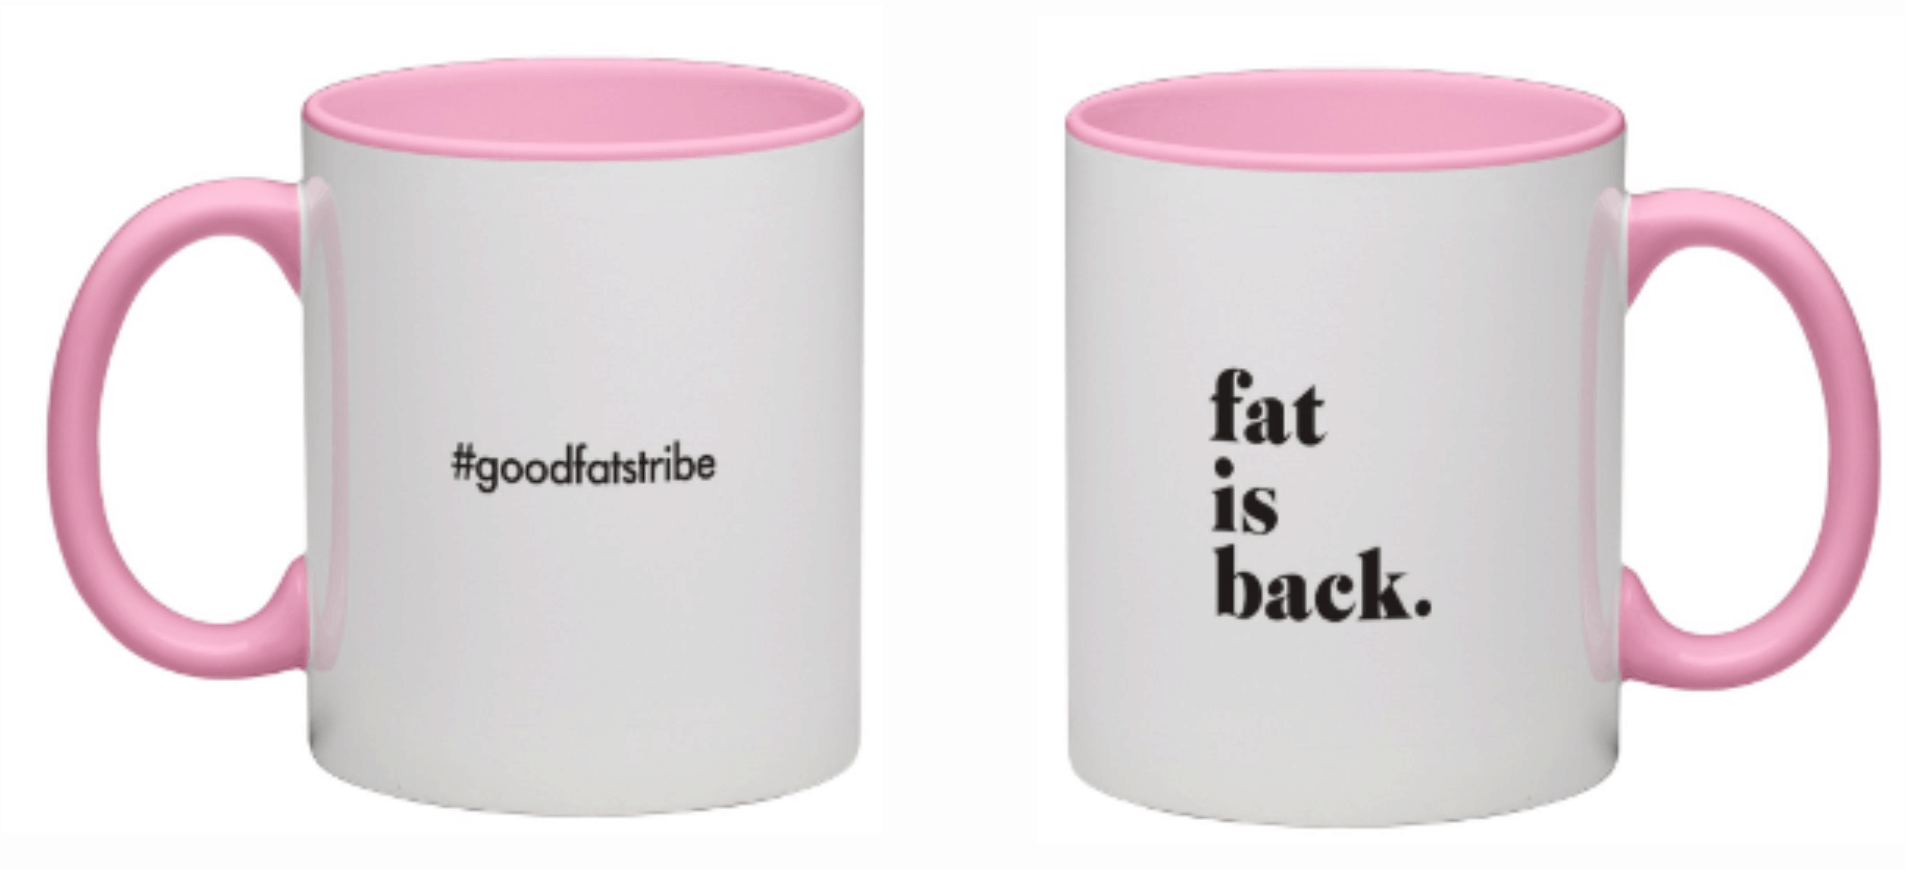 --fat is back - Pink Mug - suziesgoodfats--